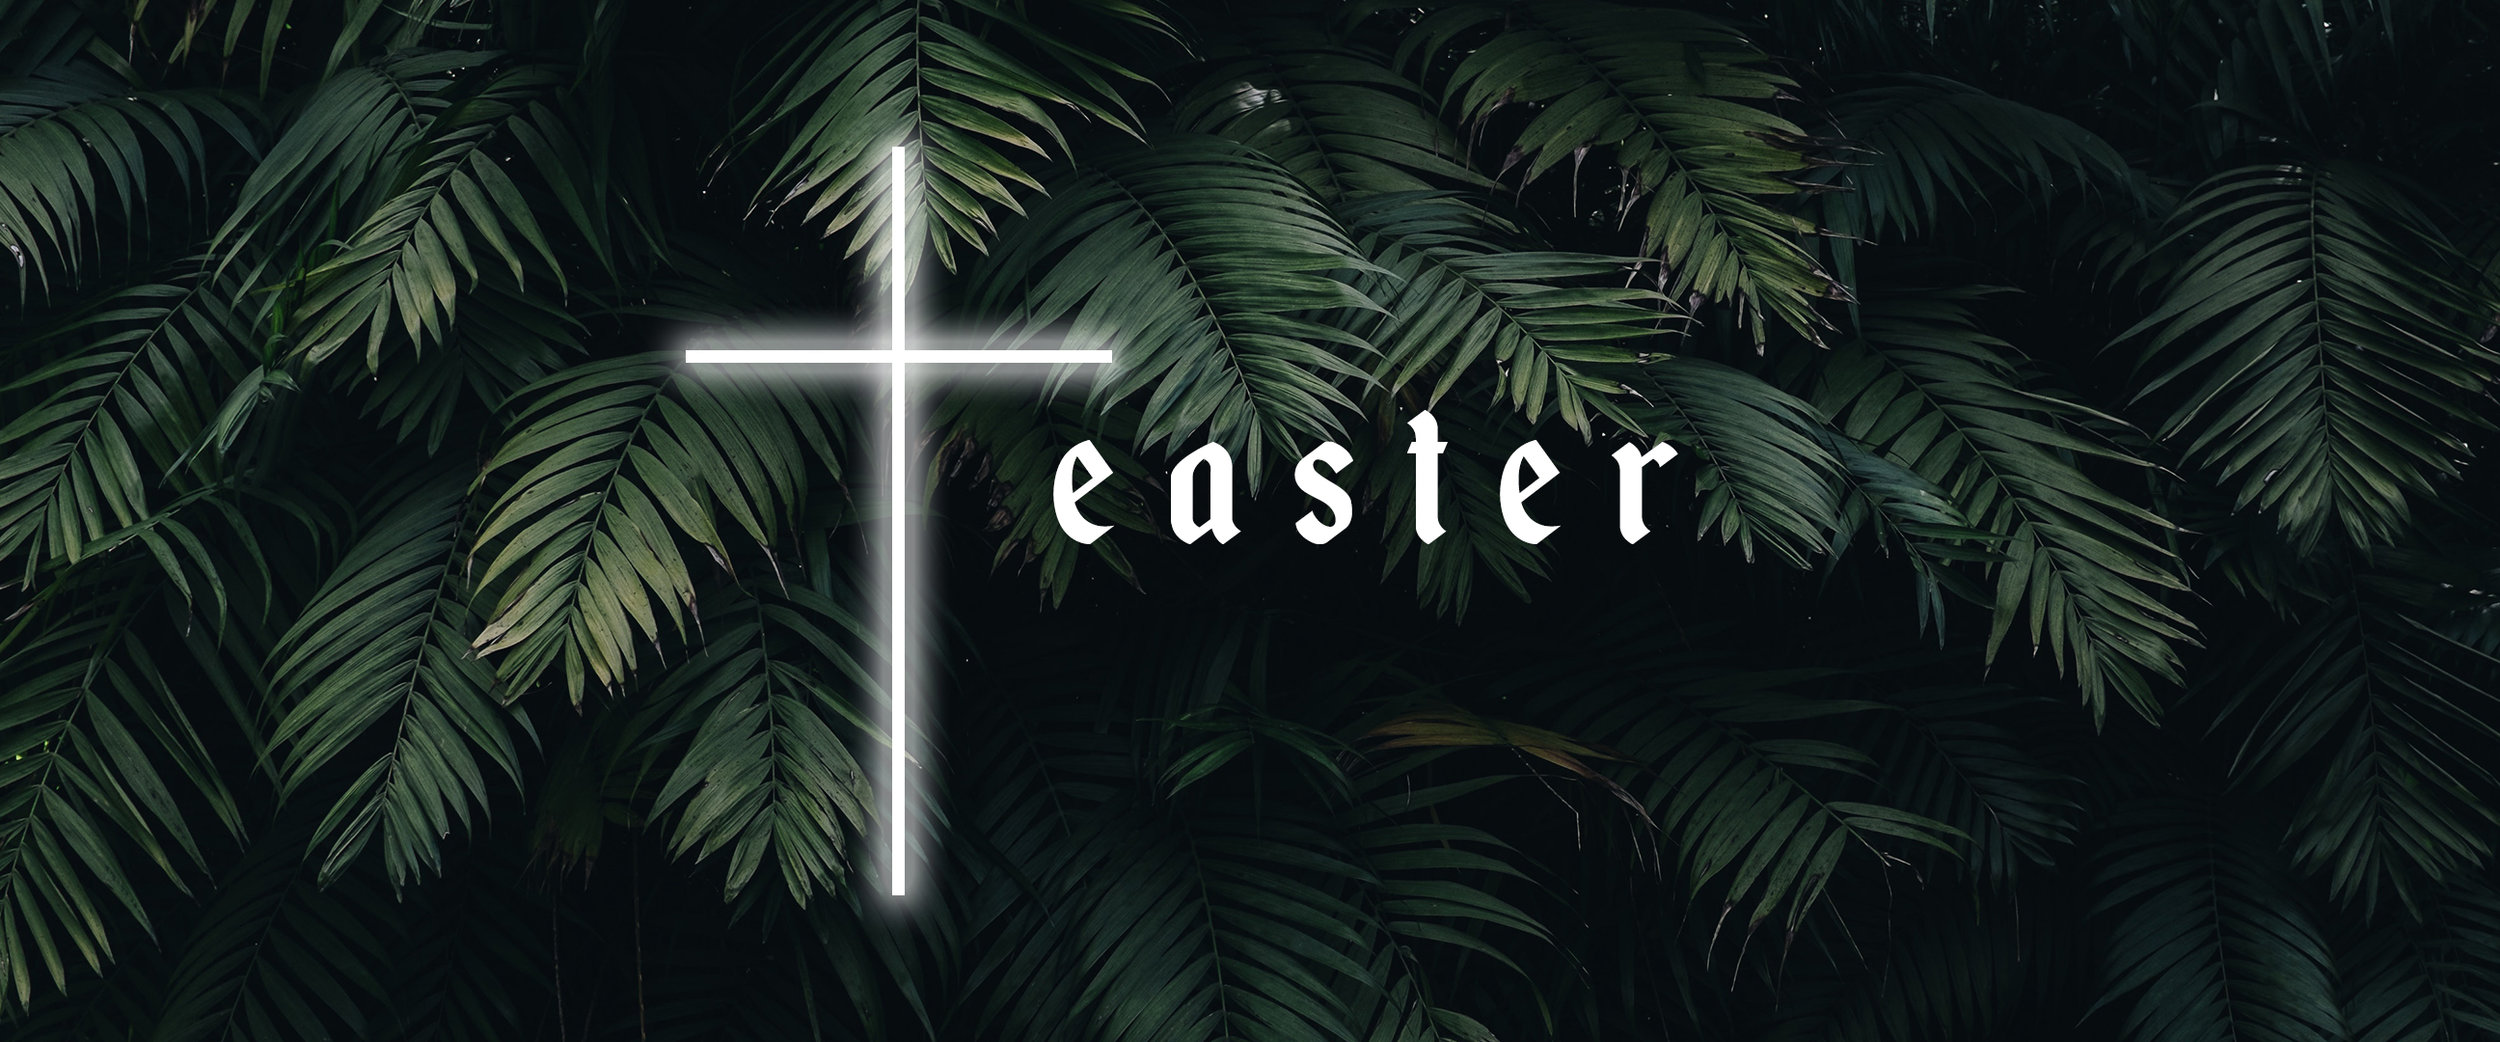 easter-website-2019.jpg